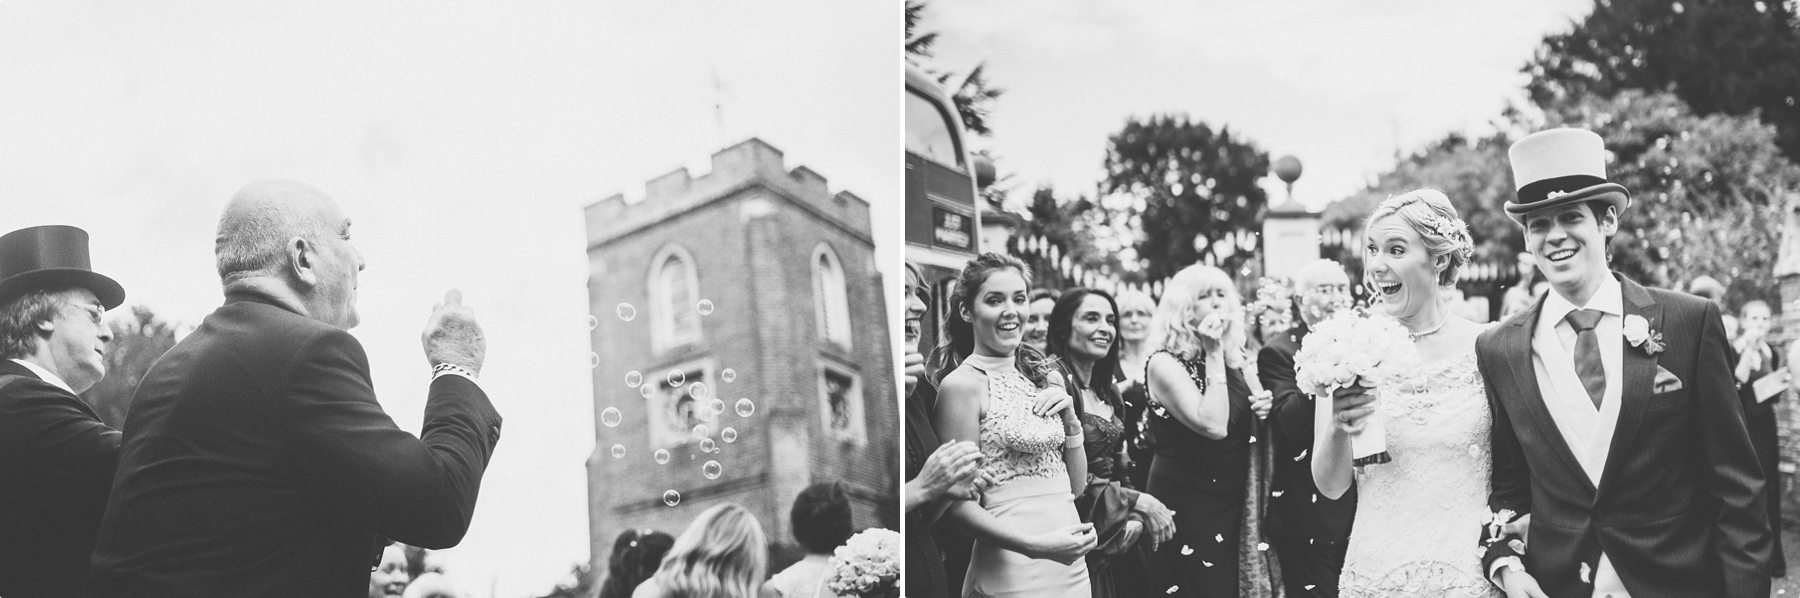 Bubble and petal wedding confetti being thrown by wedding guests